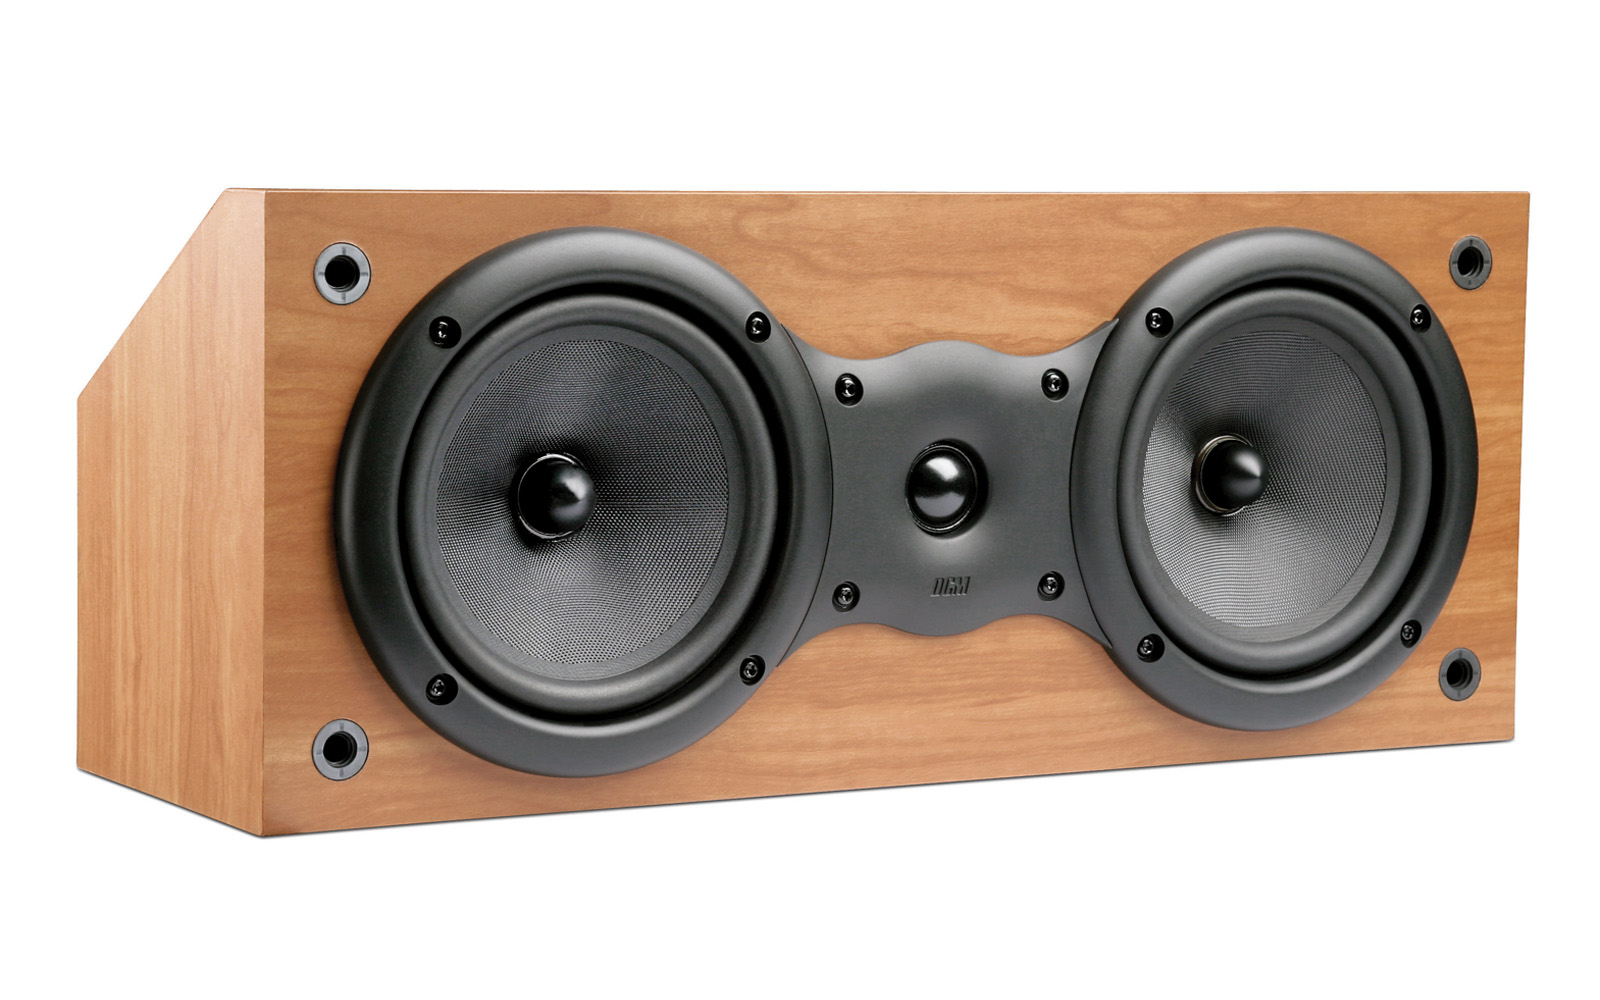 speakers 8 inch. picture of dcm dcm16c-cherry dual 6.5 inch 2-way 100w rms 8 ohm speakers